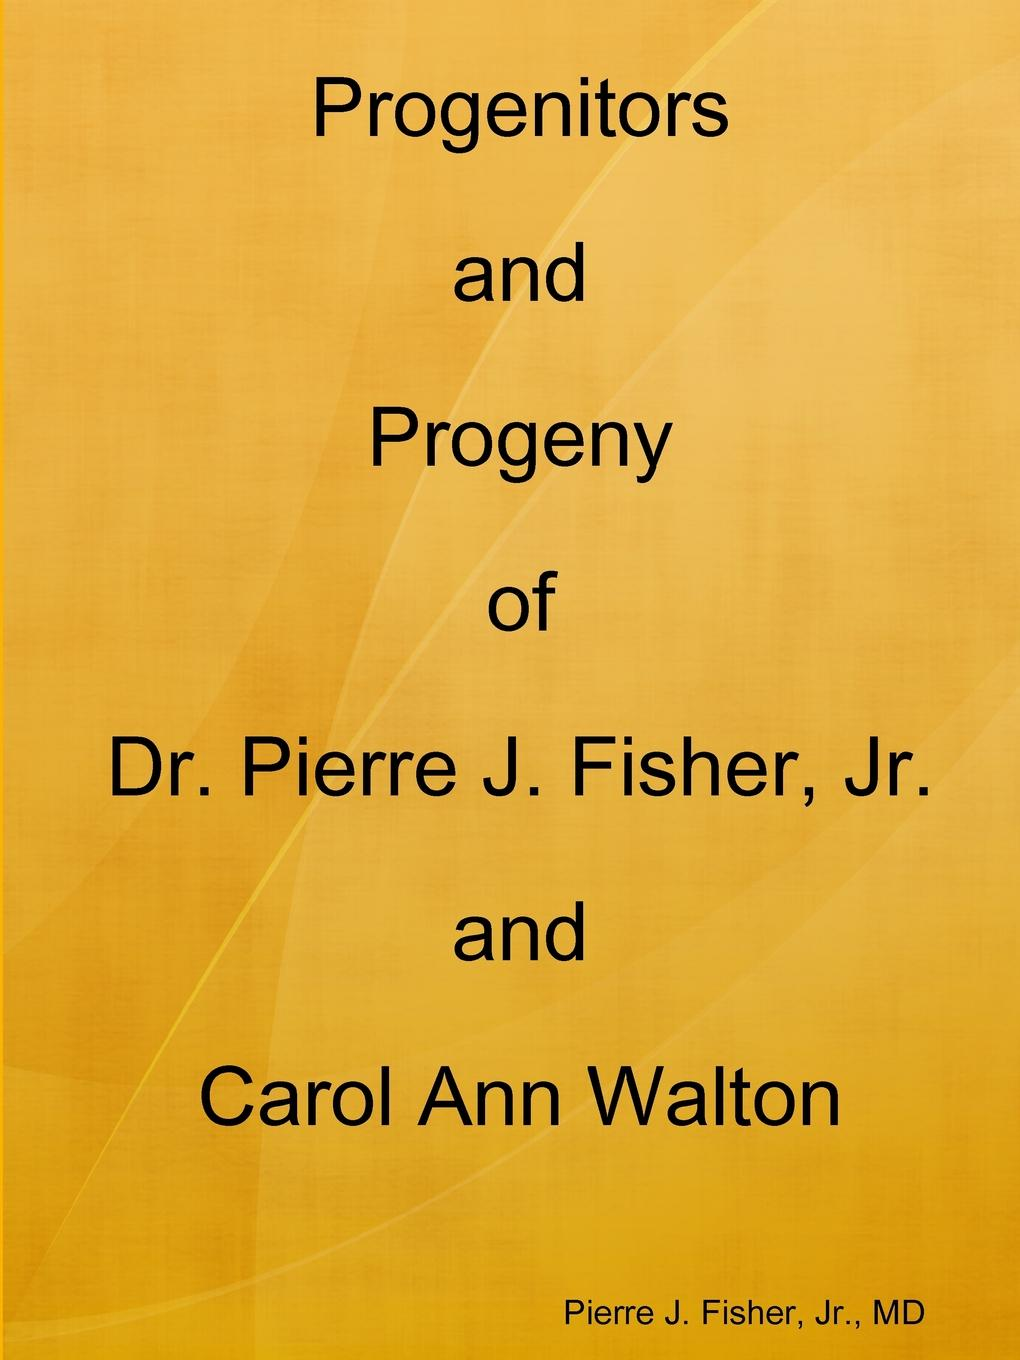 MD Pierre J. Fisher Progenitors and Progeny of Dr. Pierre J. Fisher, Jr. and Carol Ann Walton dr moniruzzaman sarker and md mojahedul islam reproductive ecology of freshwater crab